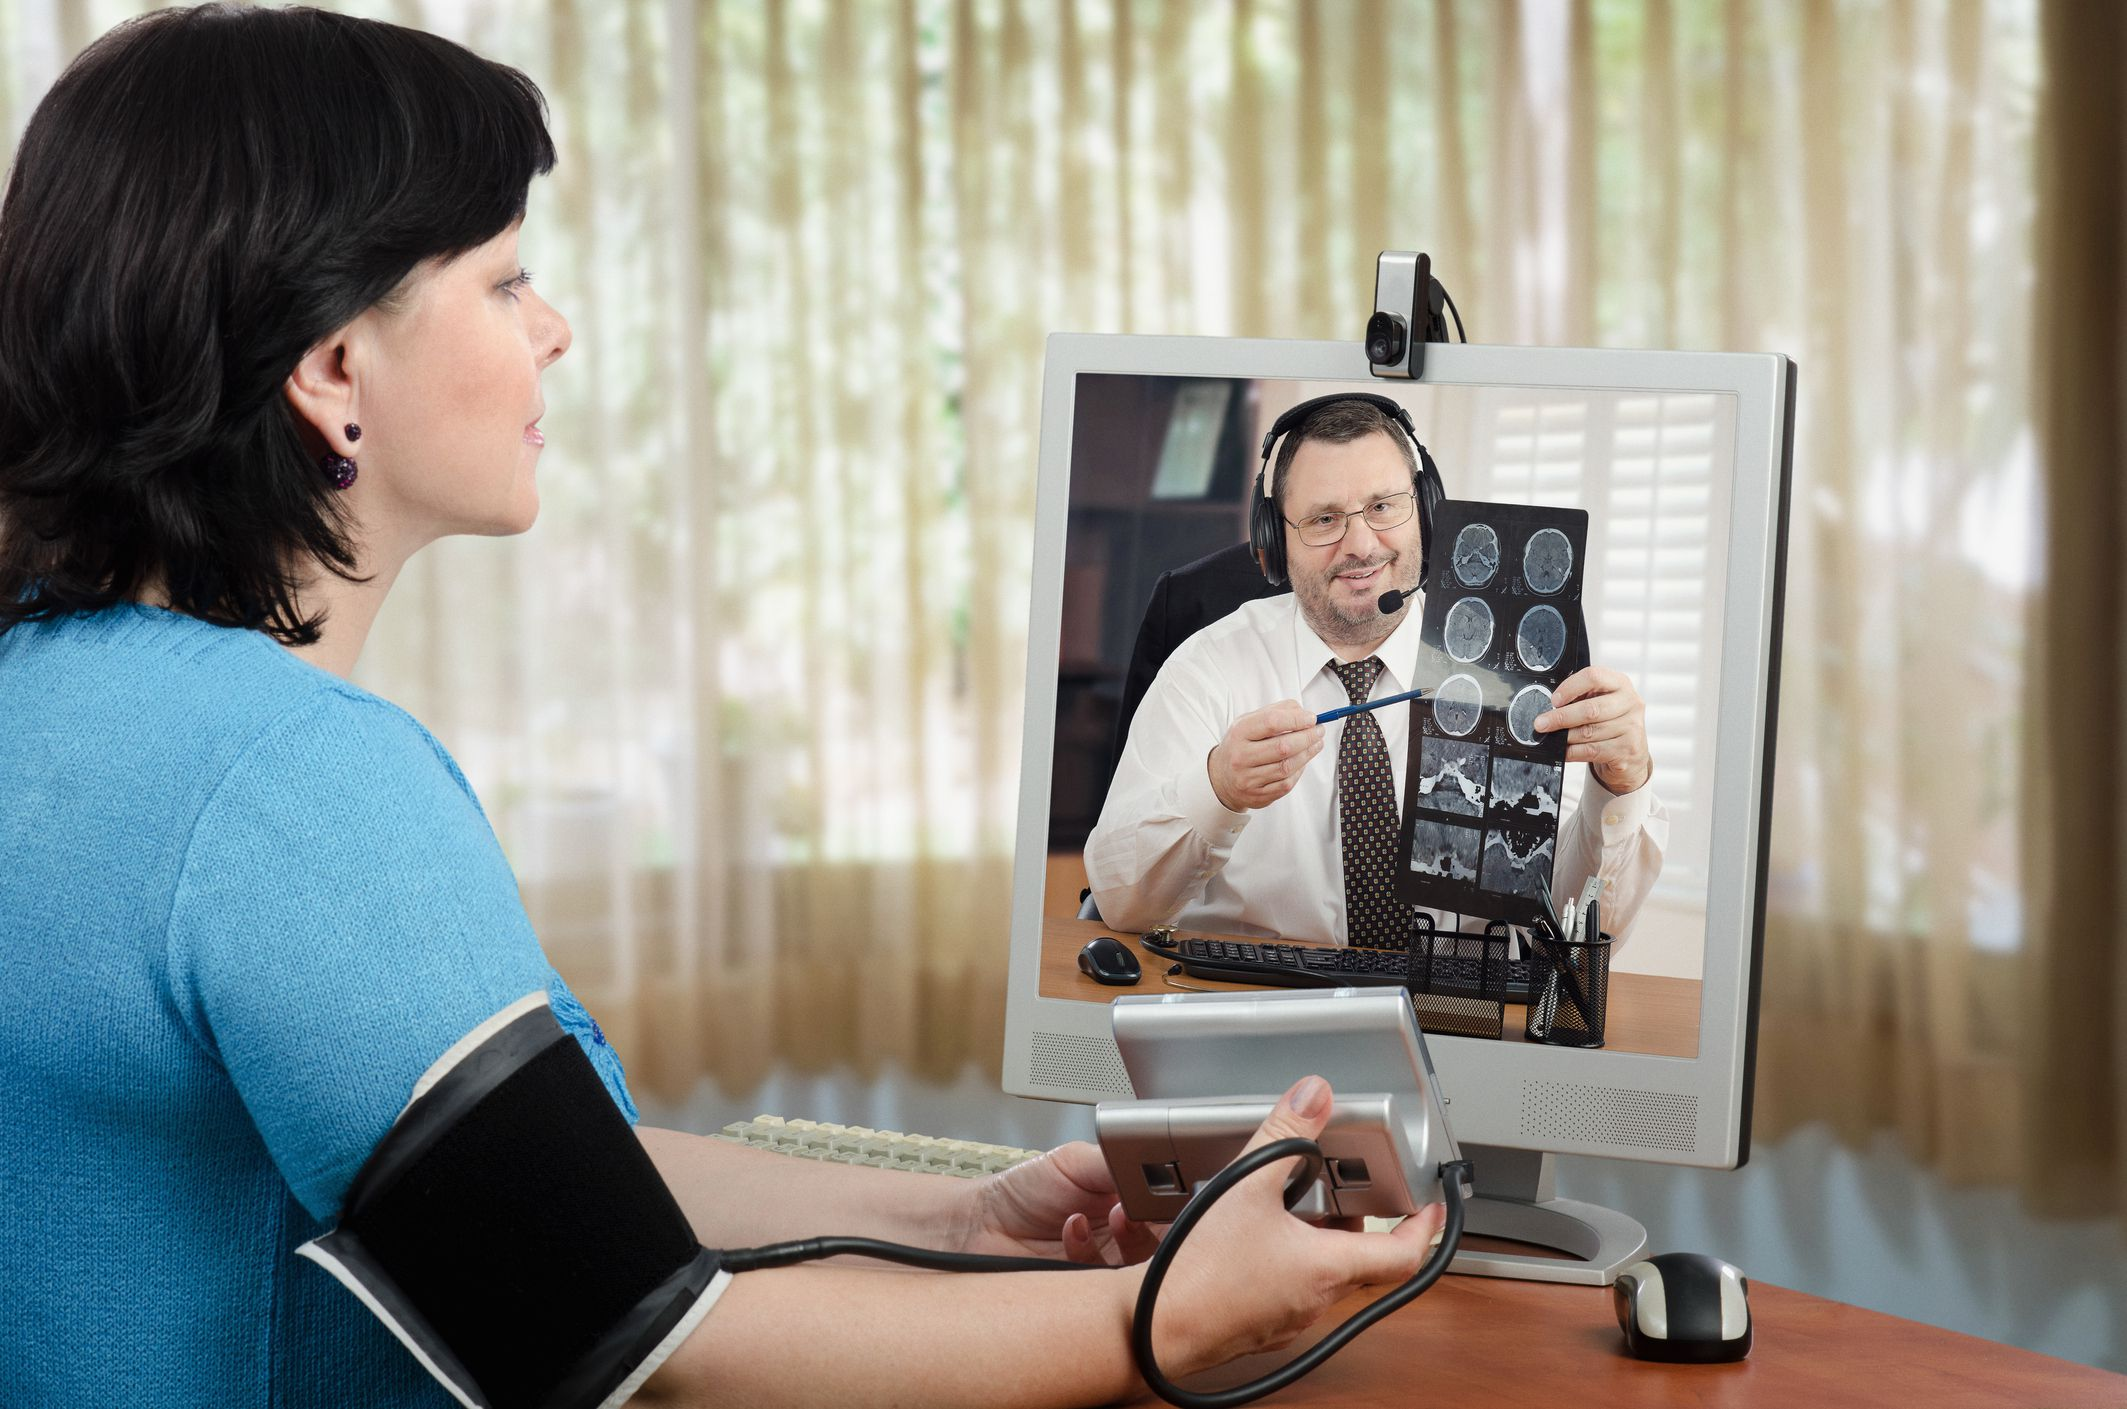 Medicare and Medicaid Coverage for Telemedicine